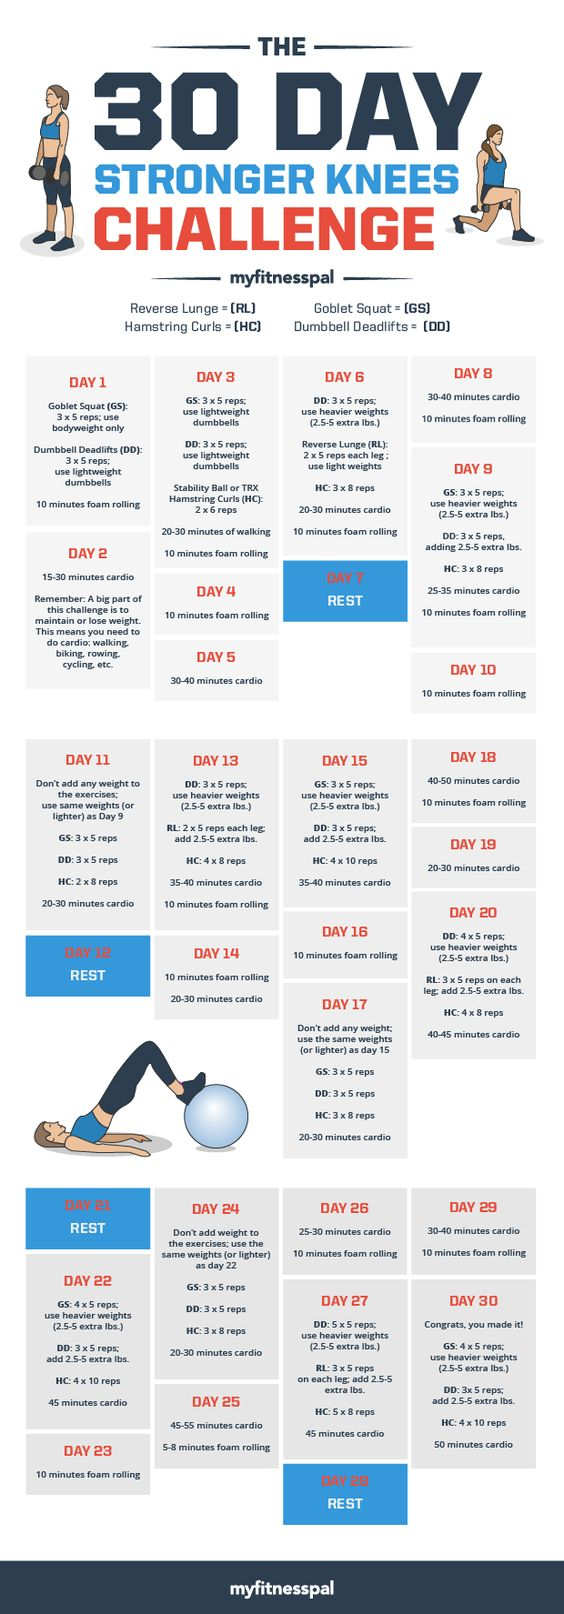 The 30-Day Stronger Knees Challenge